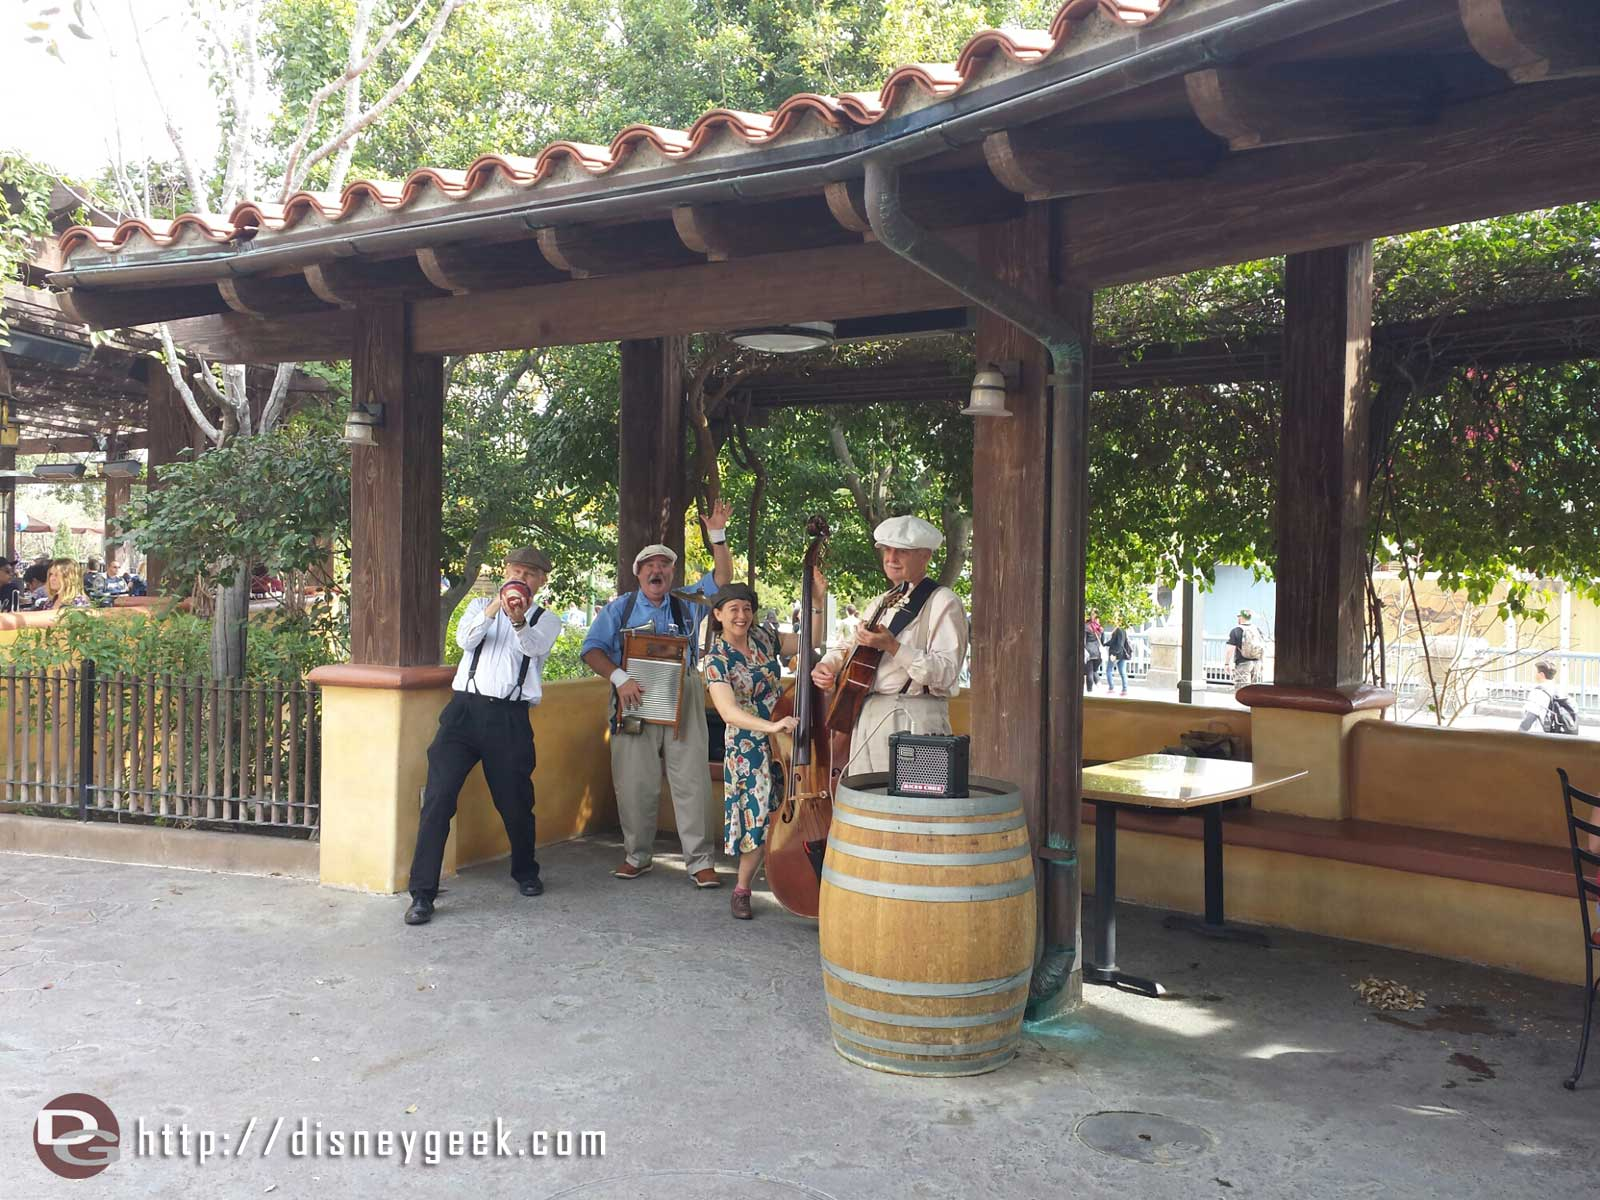 The Ellis Island Boys are at the Sonoma Terrace because of the Lunar New year in Paradise Gardens